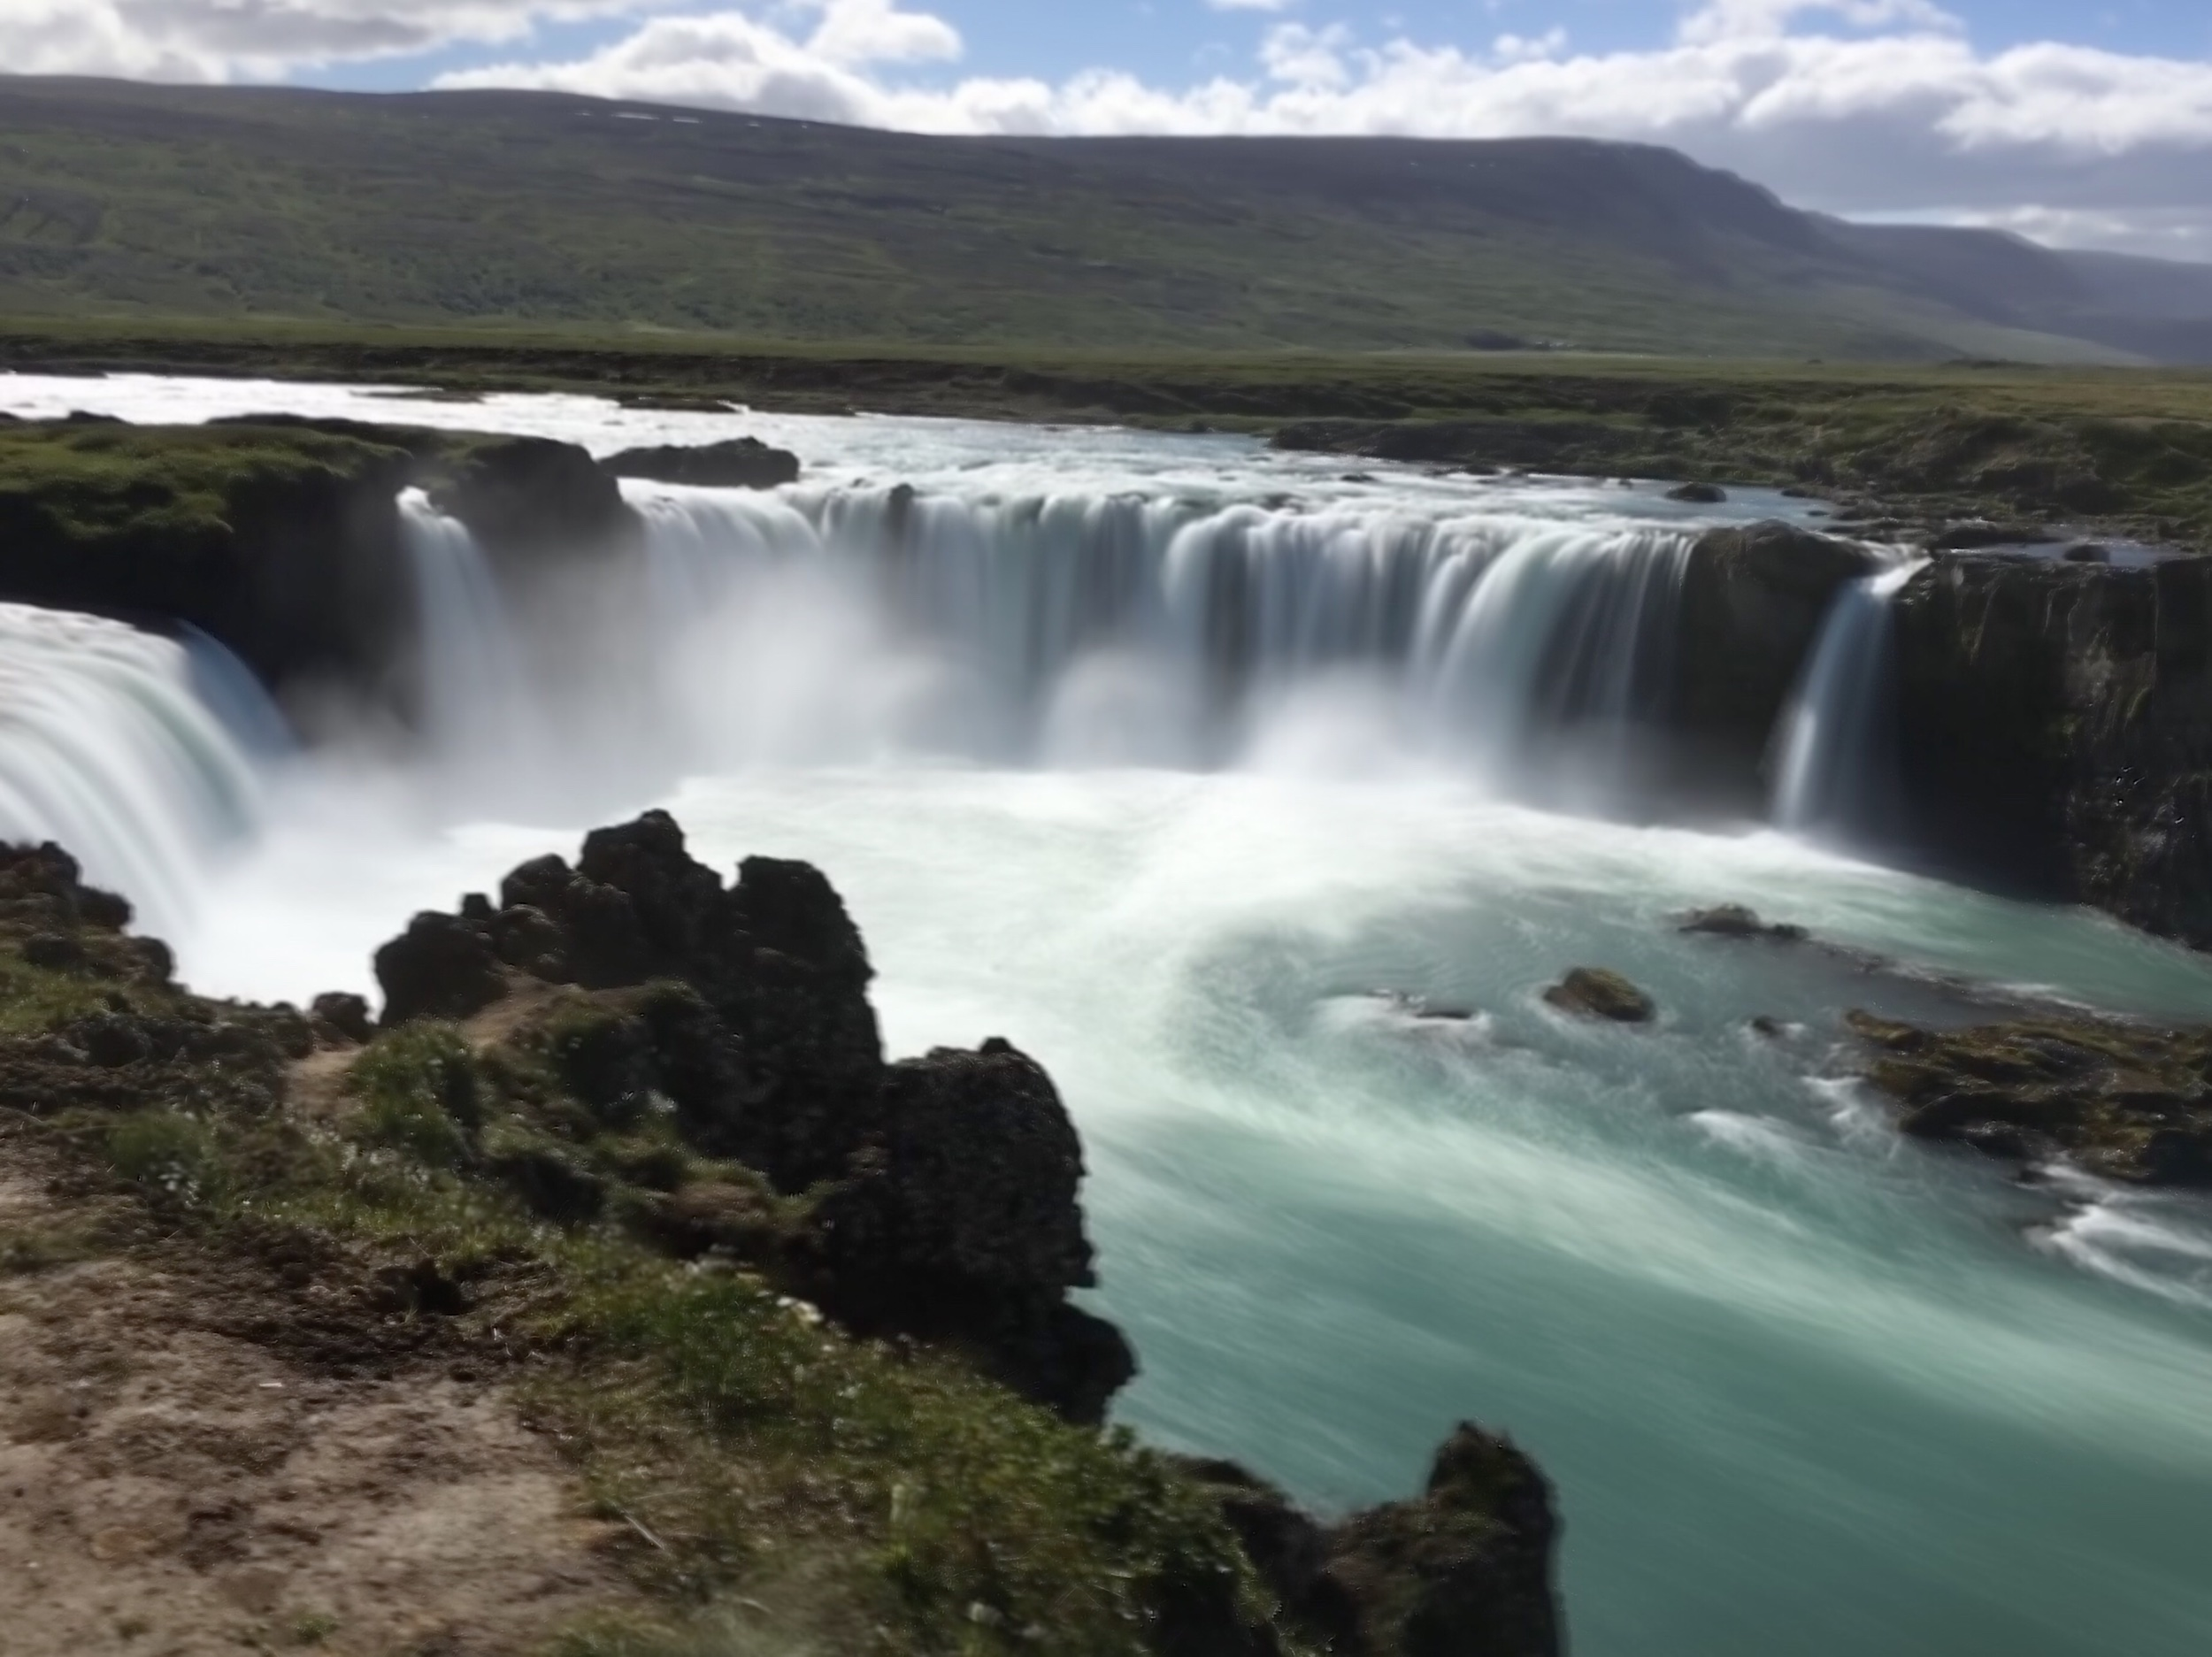 Iceland's Ring Road Itinerary - by Eric Bequary - www.travelwildnow.com